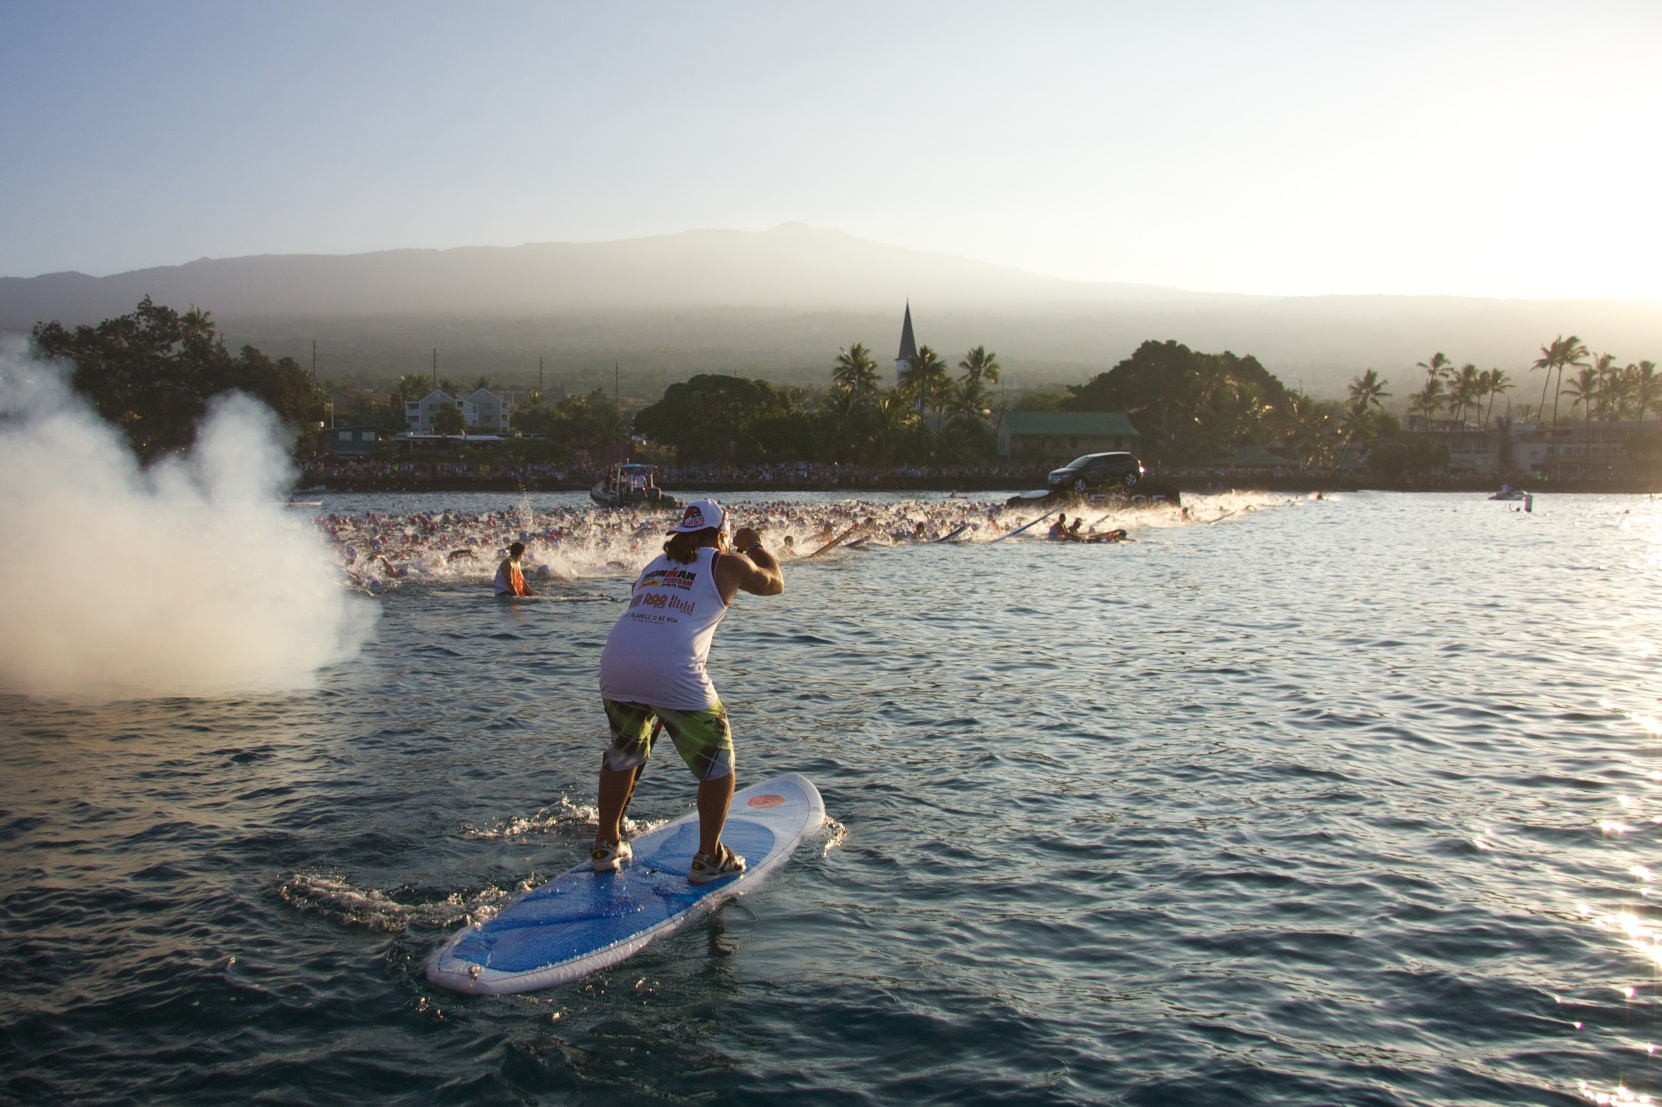 Team Freespeed in Kona